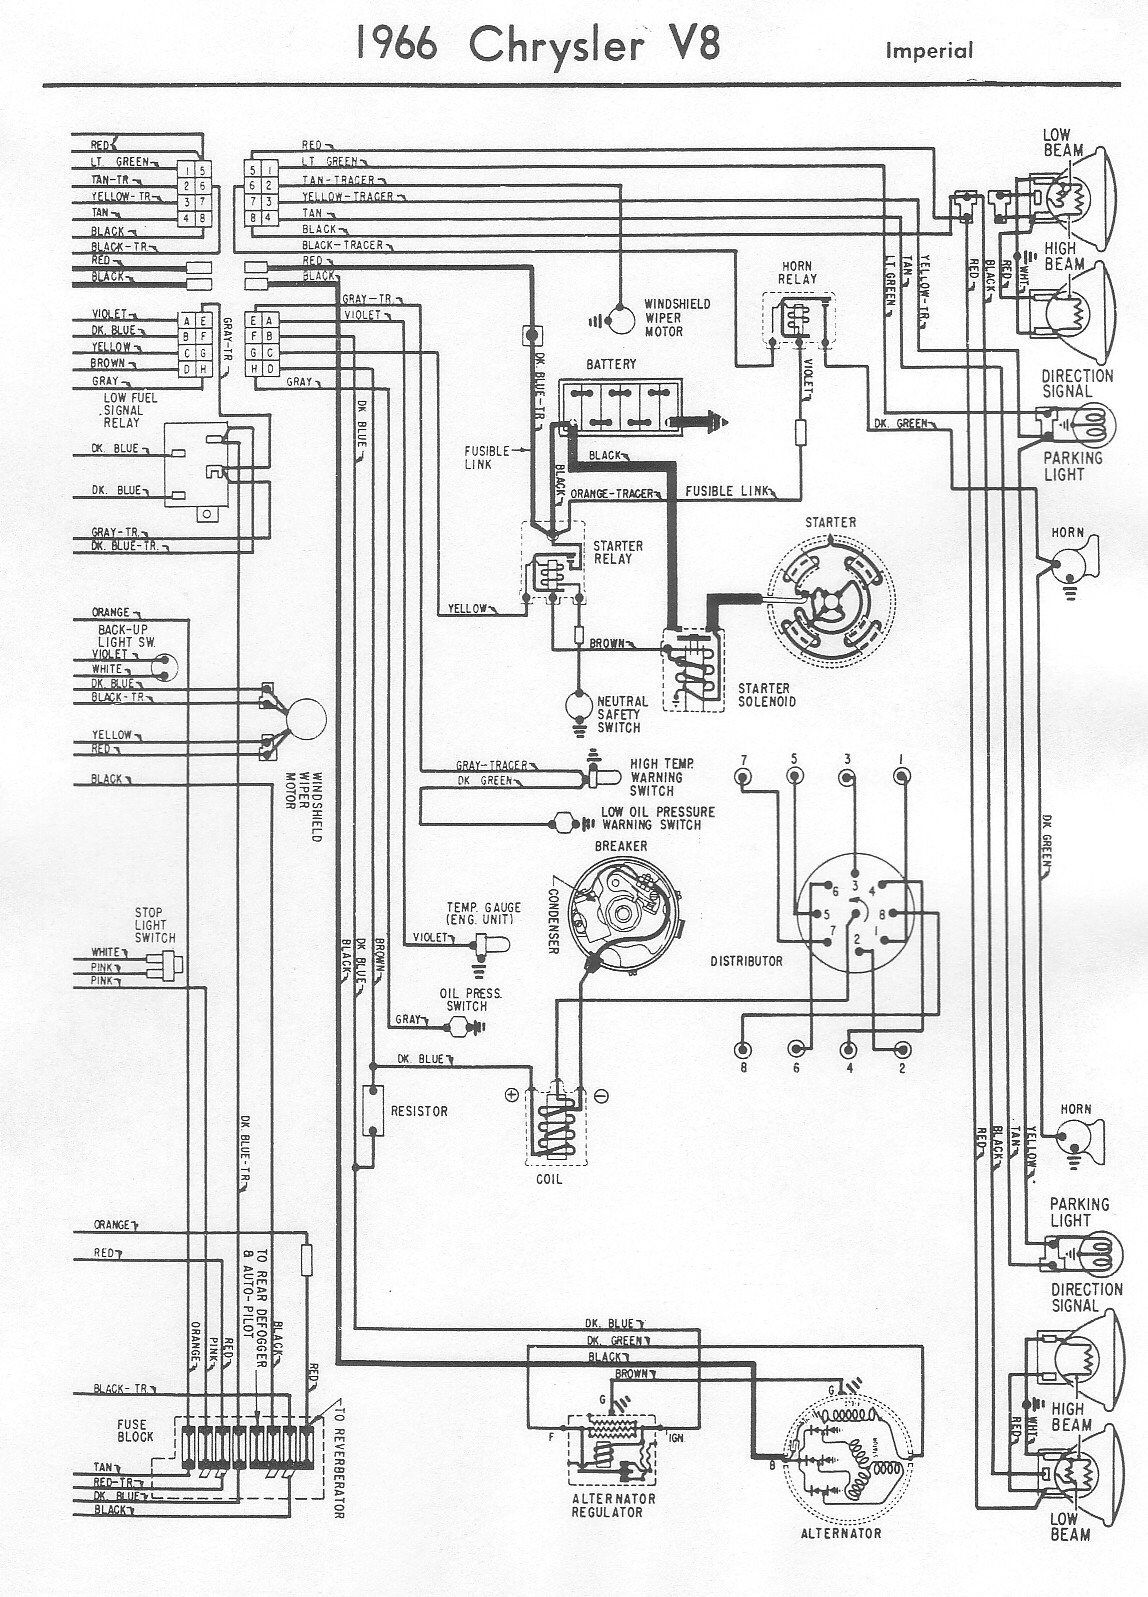 1968 chrysler 300 wiring diagram 05 chrysler 300 wiring diagram